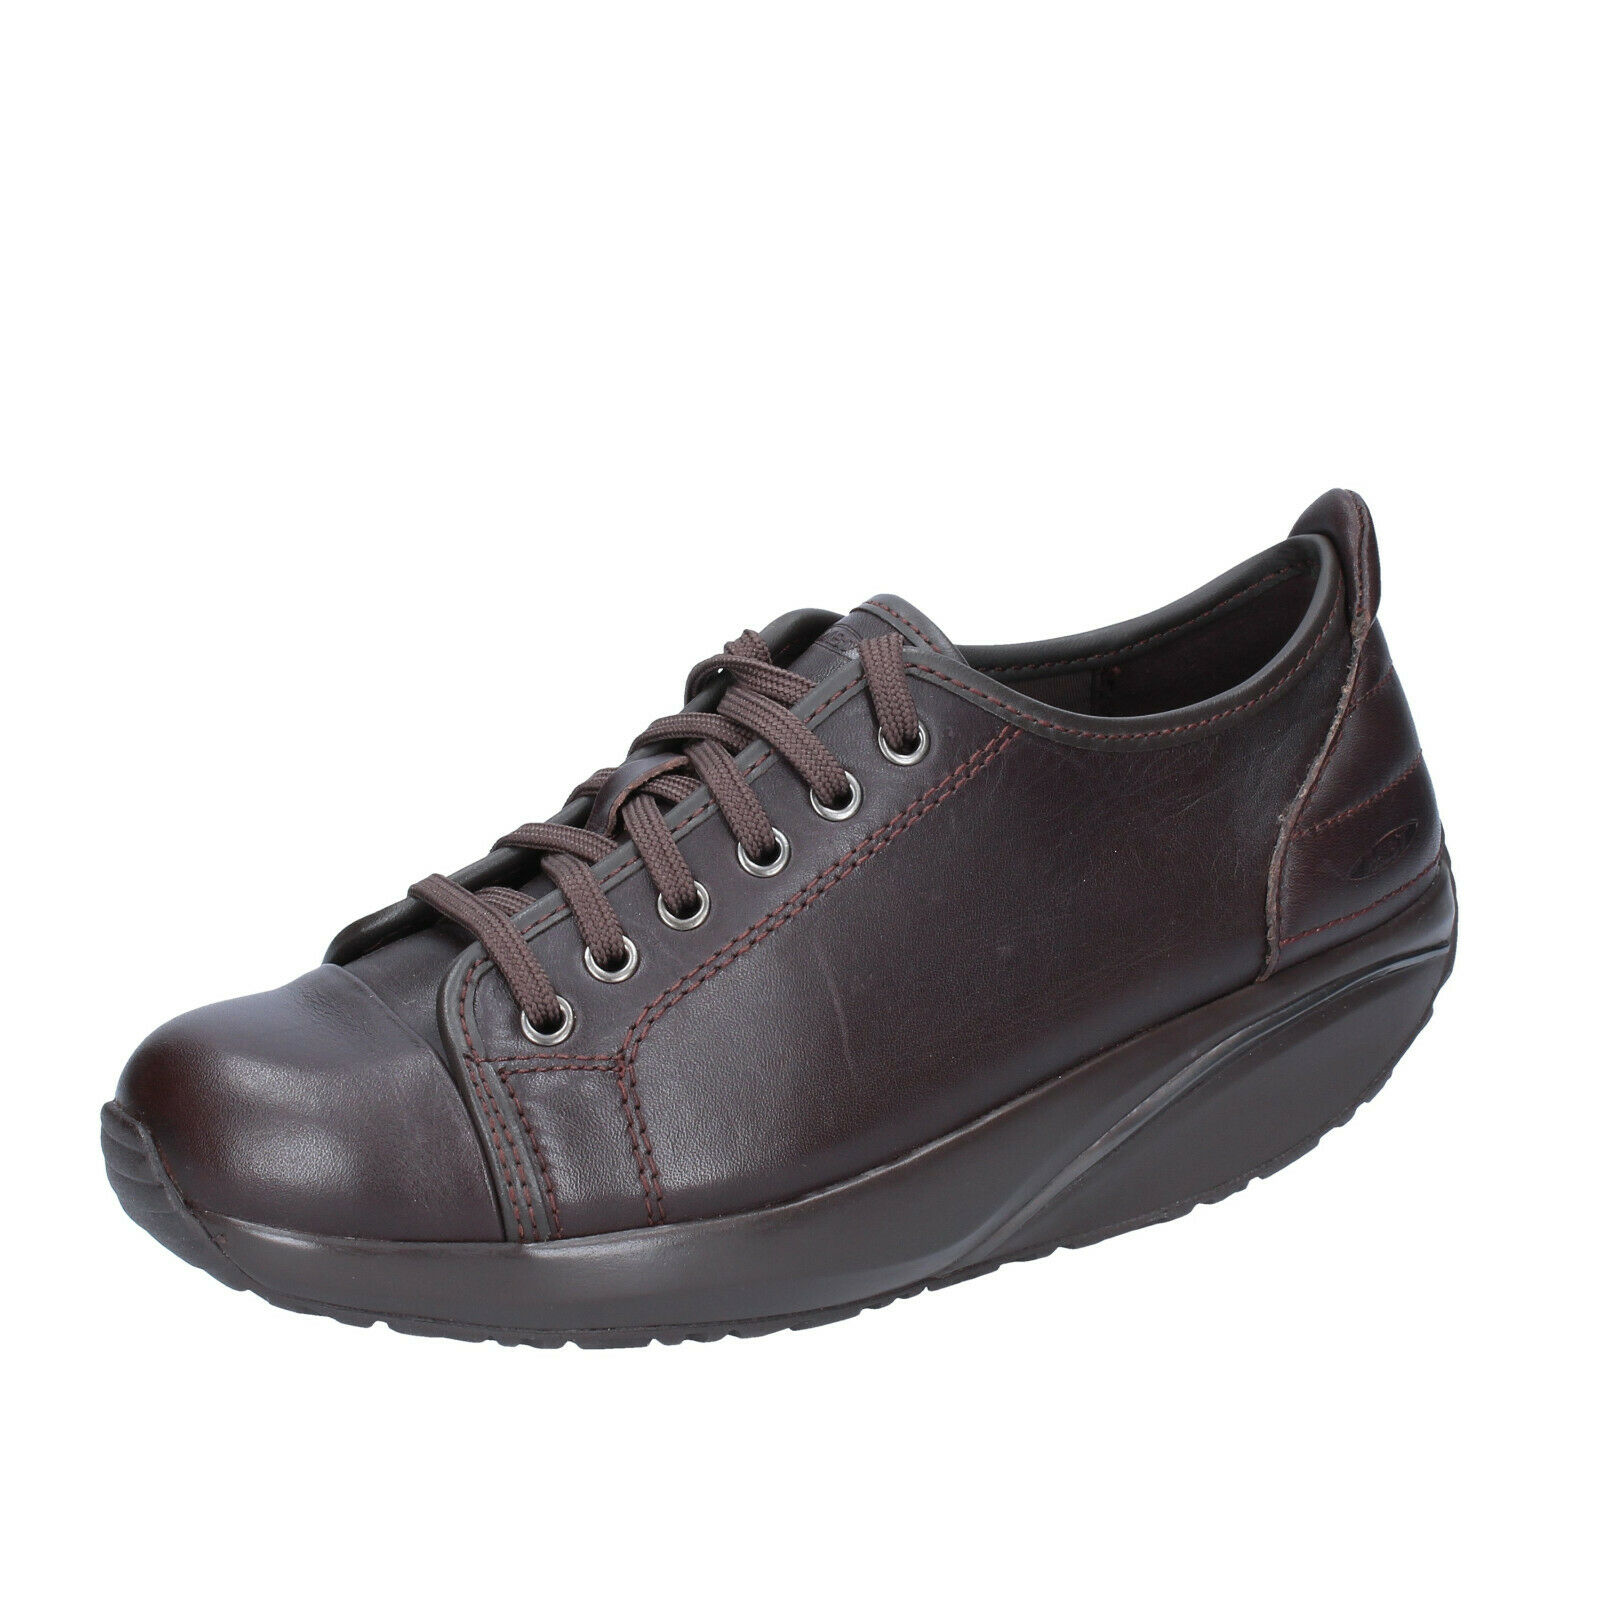 Women's shoes MBT 5   5,5 (EU (EU (EU 36) sneakers brown leather performance BS555-36 c3493d